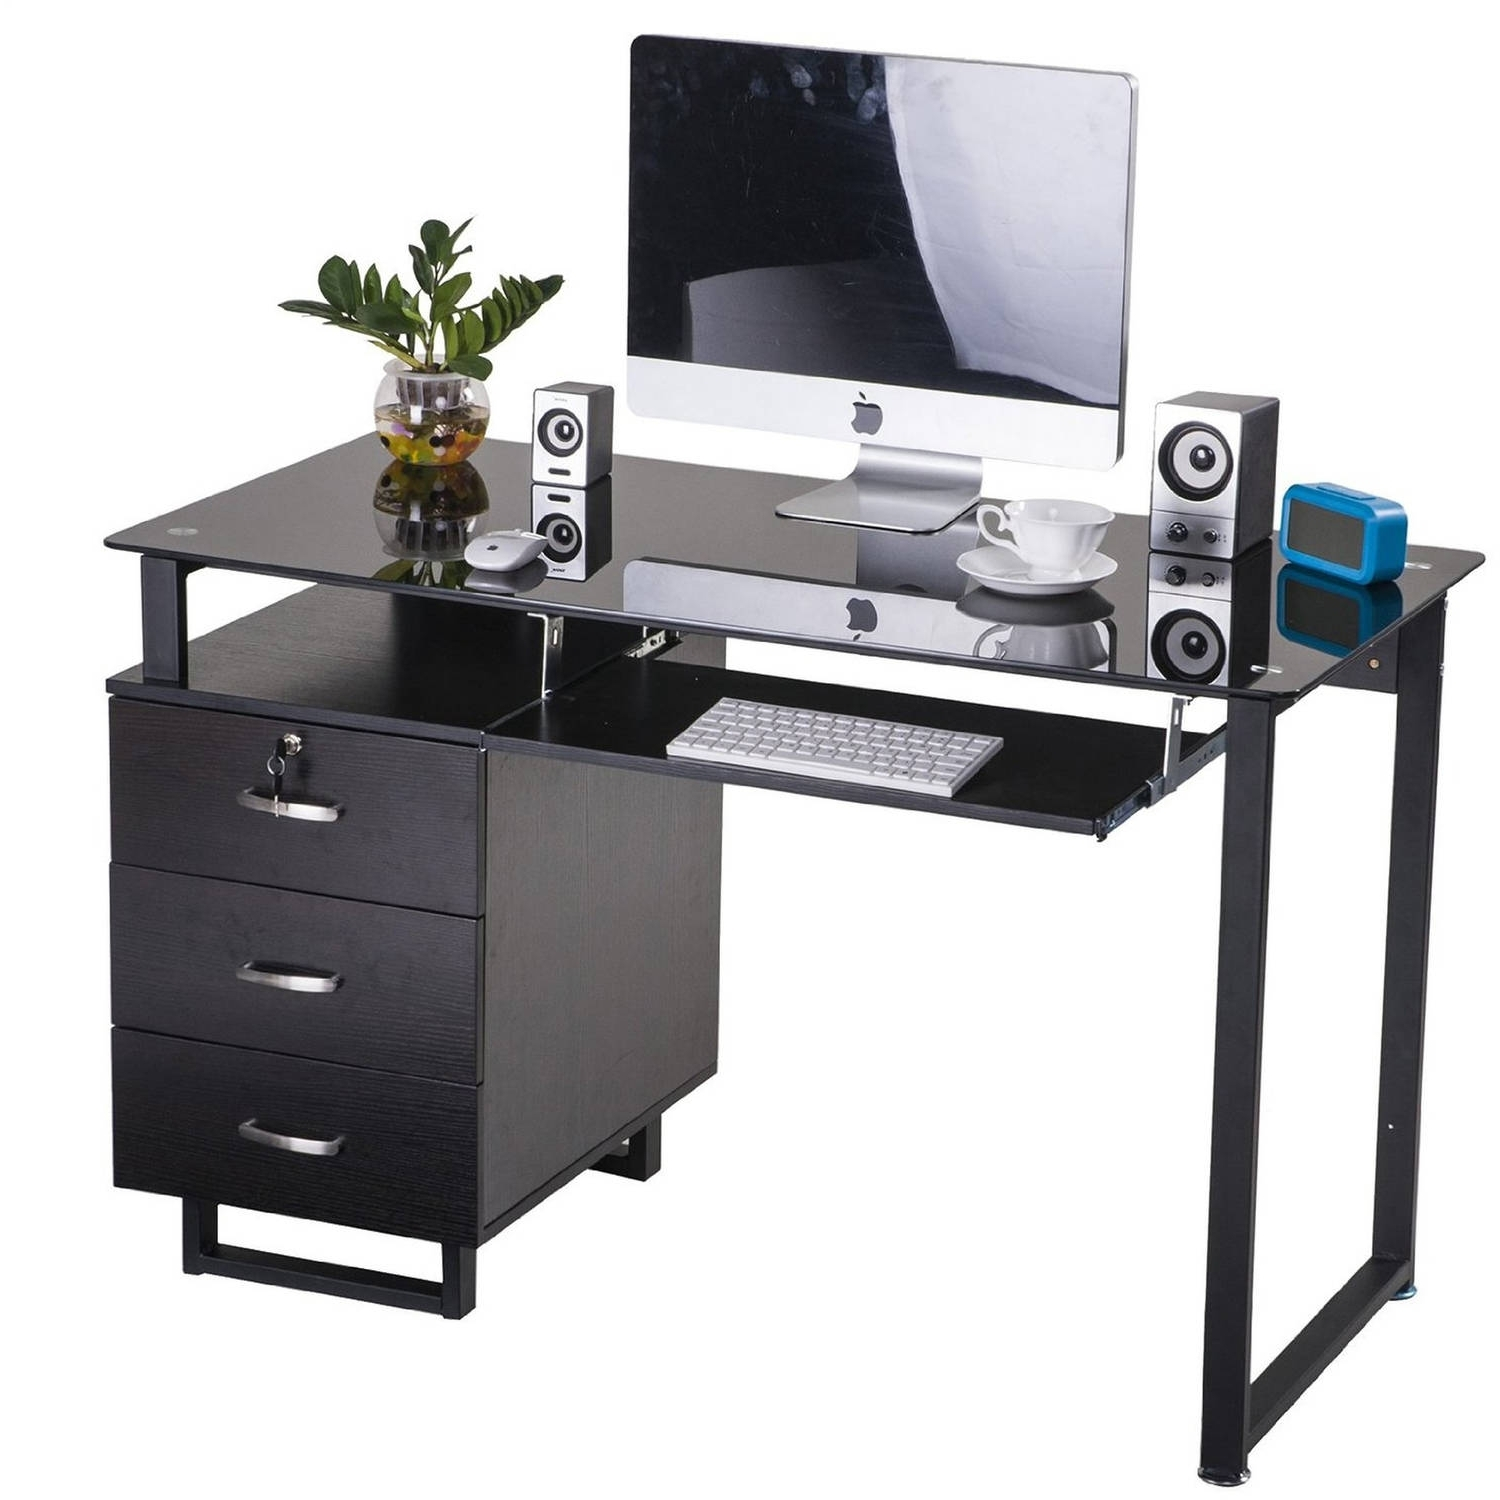 Merax Large Glass Computer Desk Office Desk With Keyboard Tray And Regarding Favorite Computer Desks With Keyboard Tray (View 16 of 20)